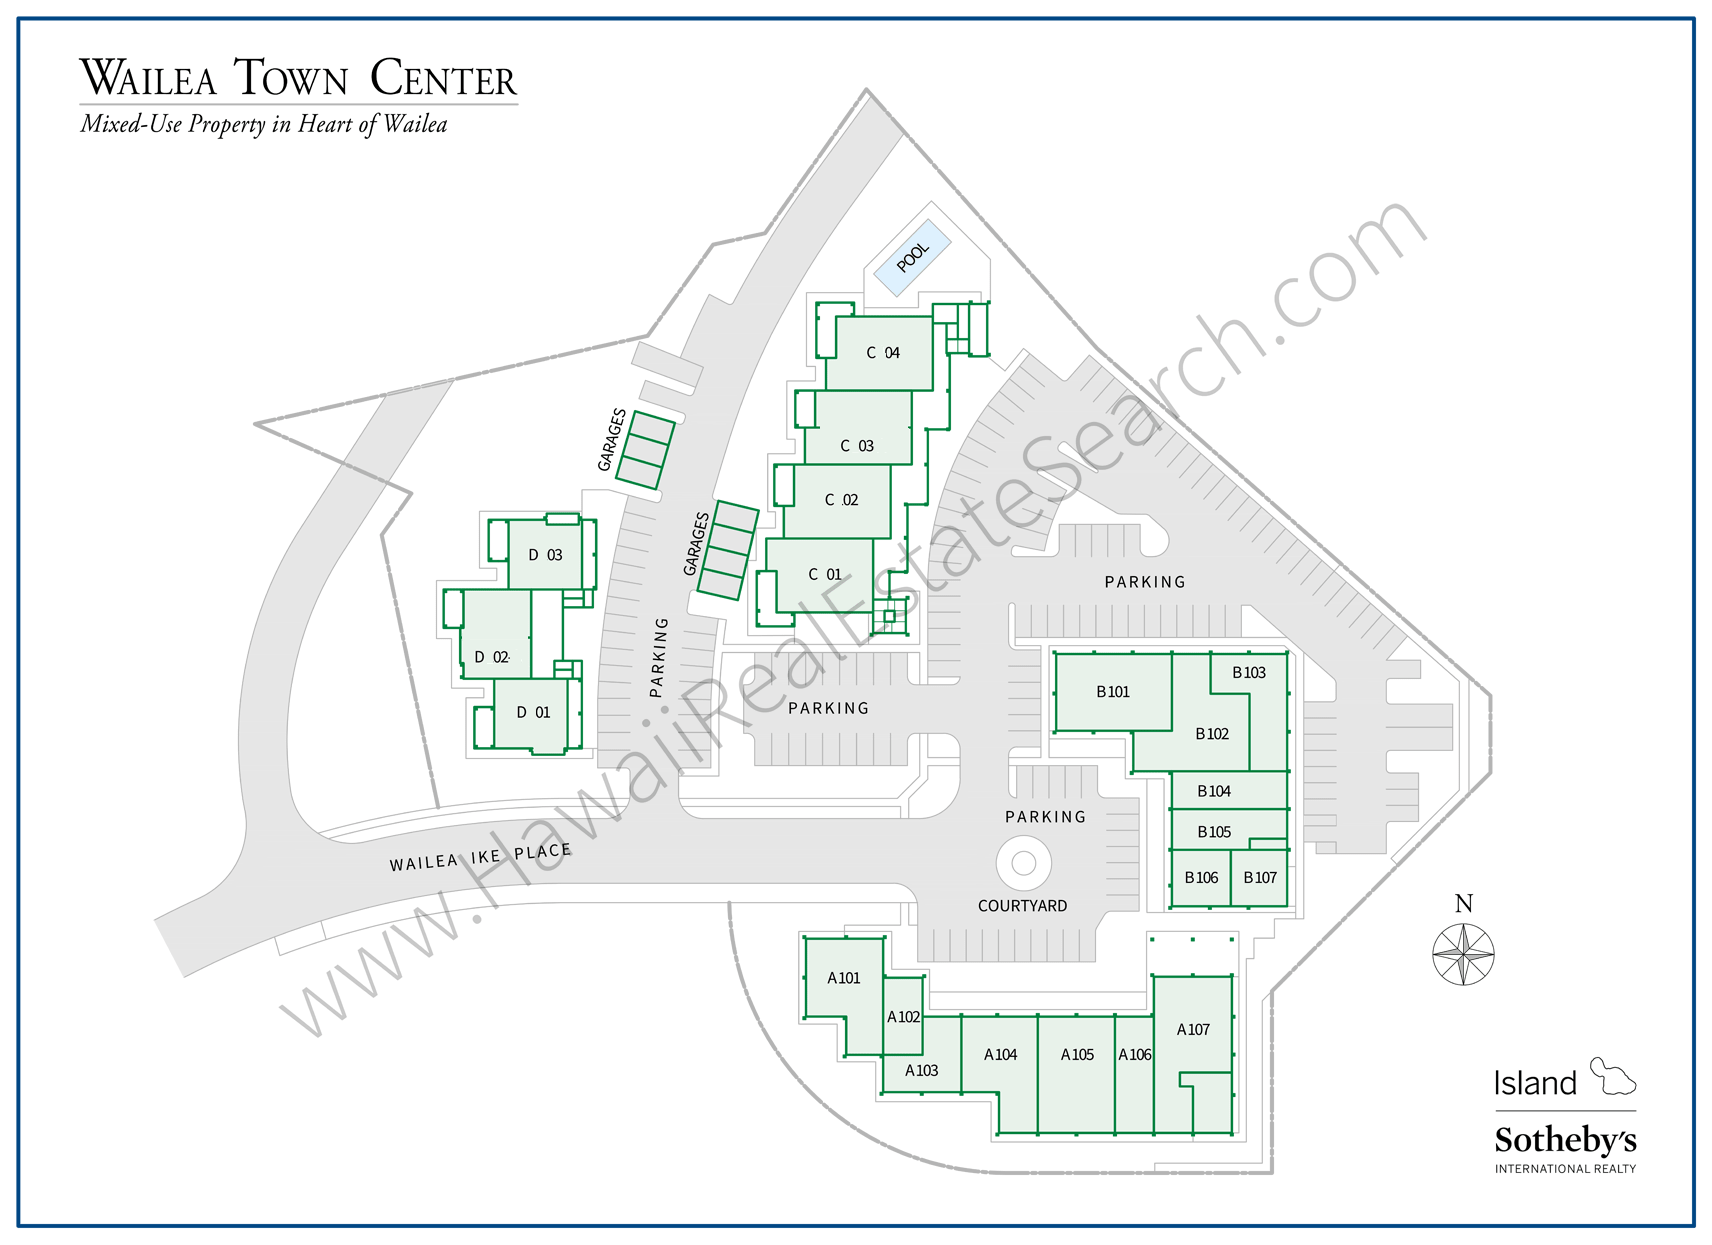 Wailea Town Center Property Map 2018